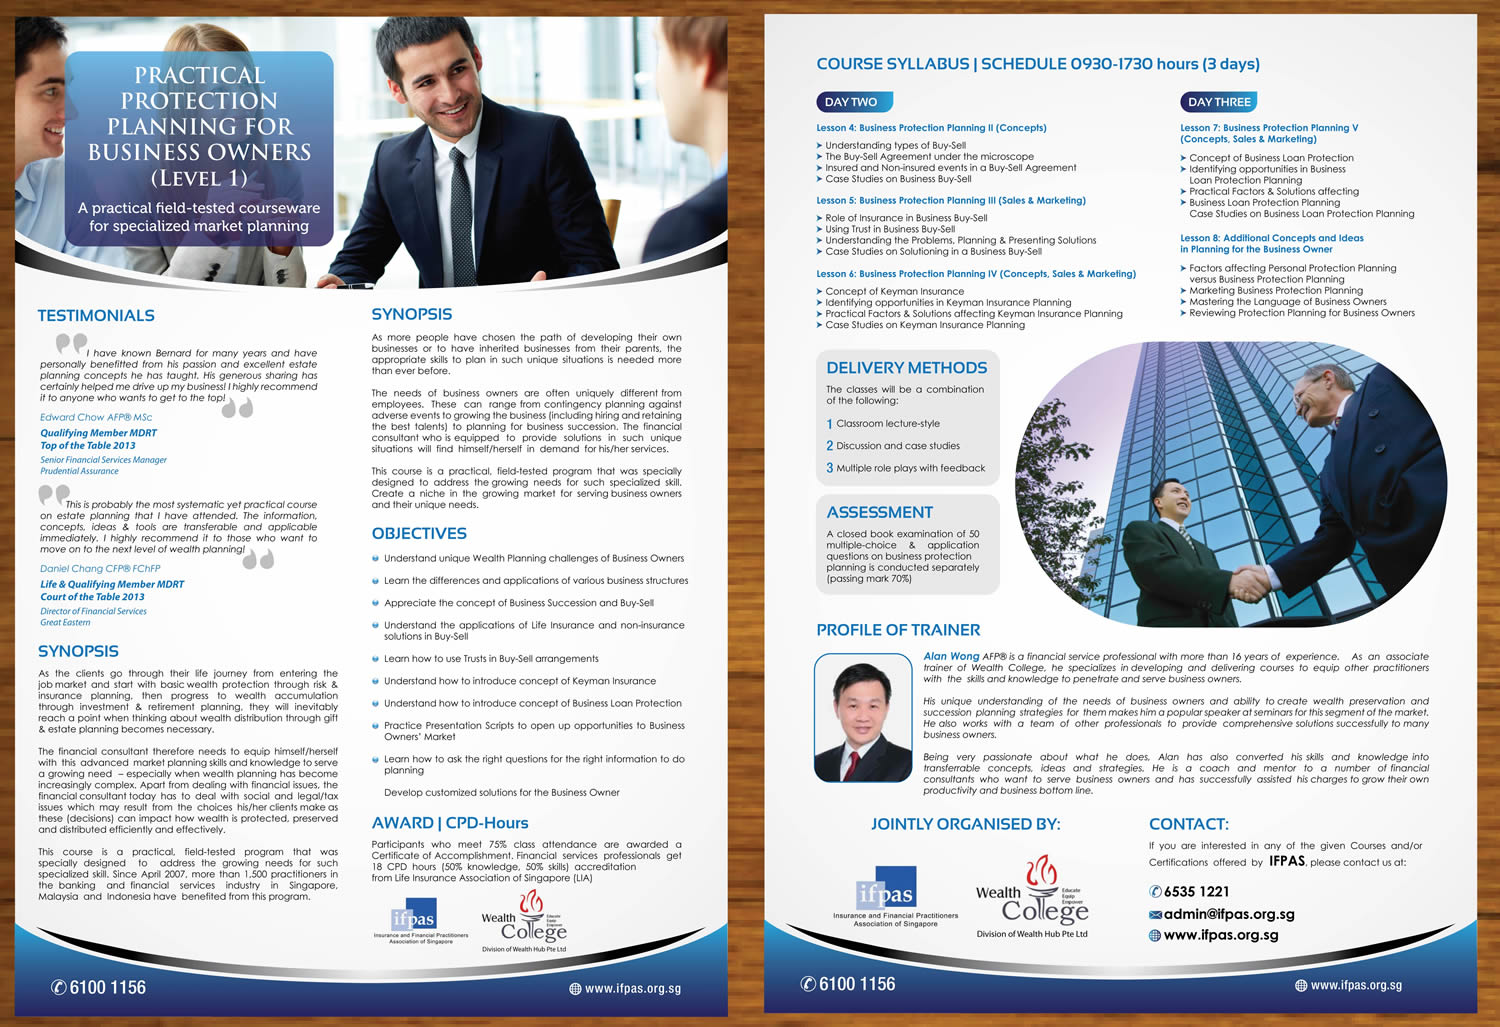 training brochure design for wealth hub pte ltd by sbss design